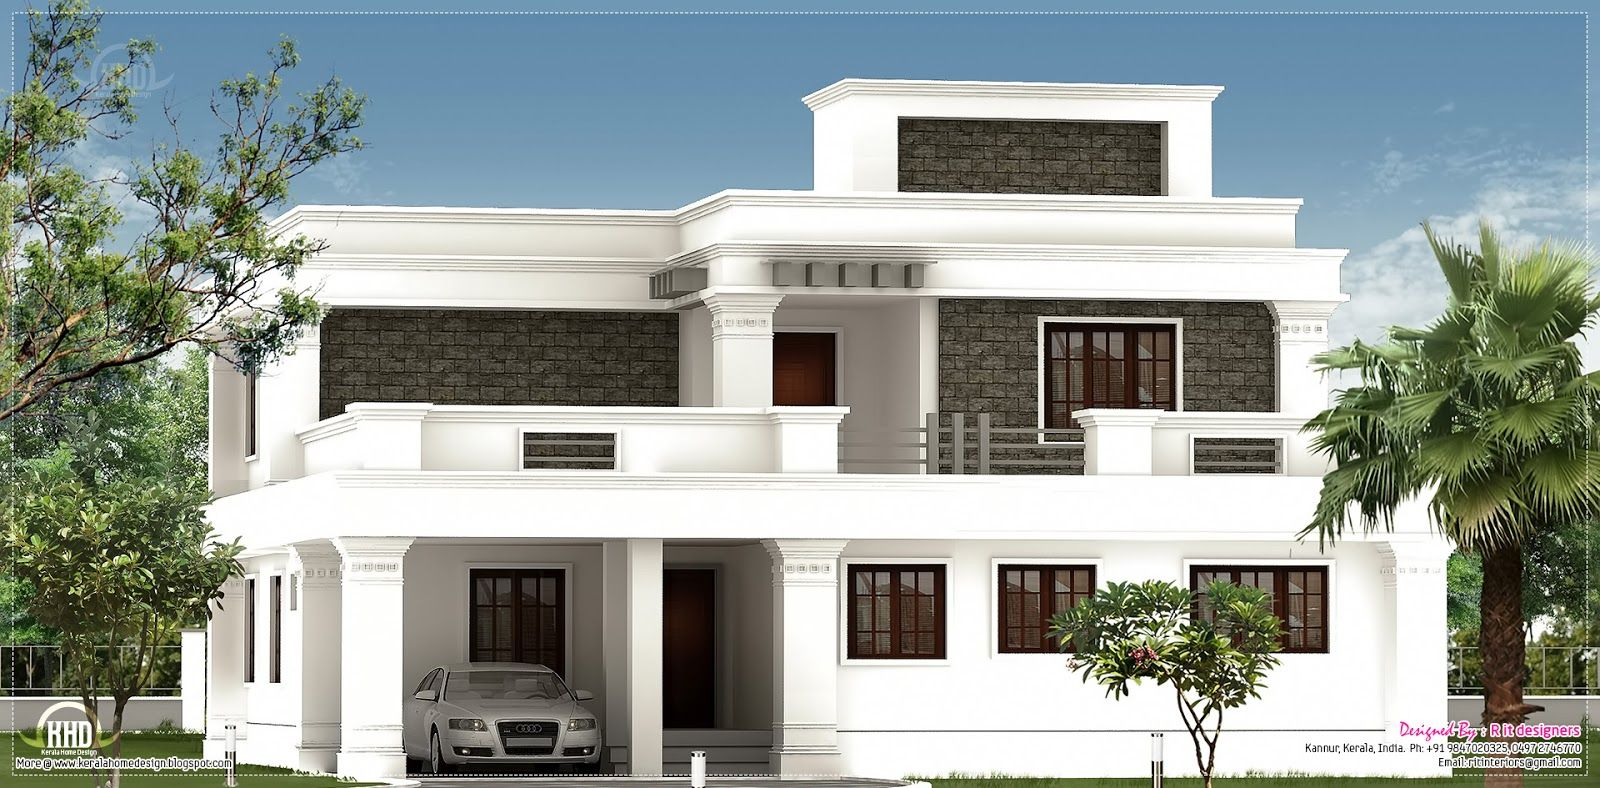 home designs modern house design 2012007 pinoy eplans modern house designs small house design flat roof